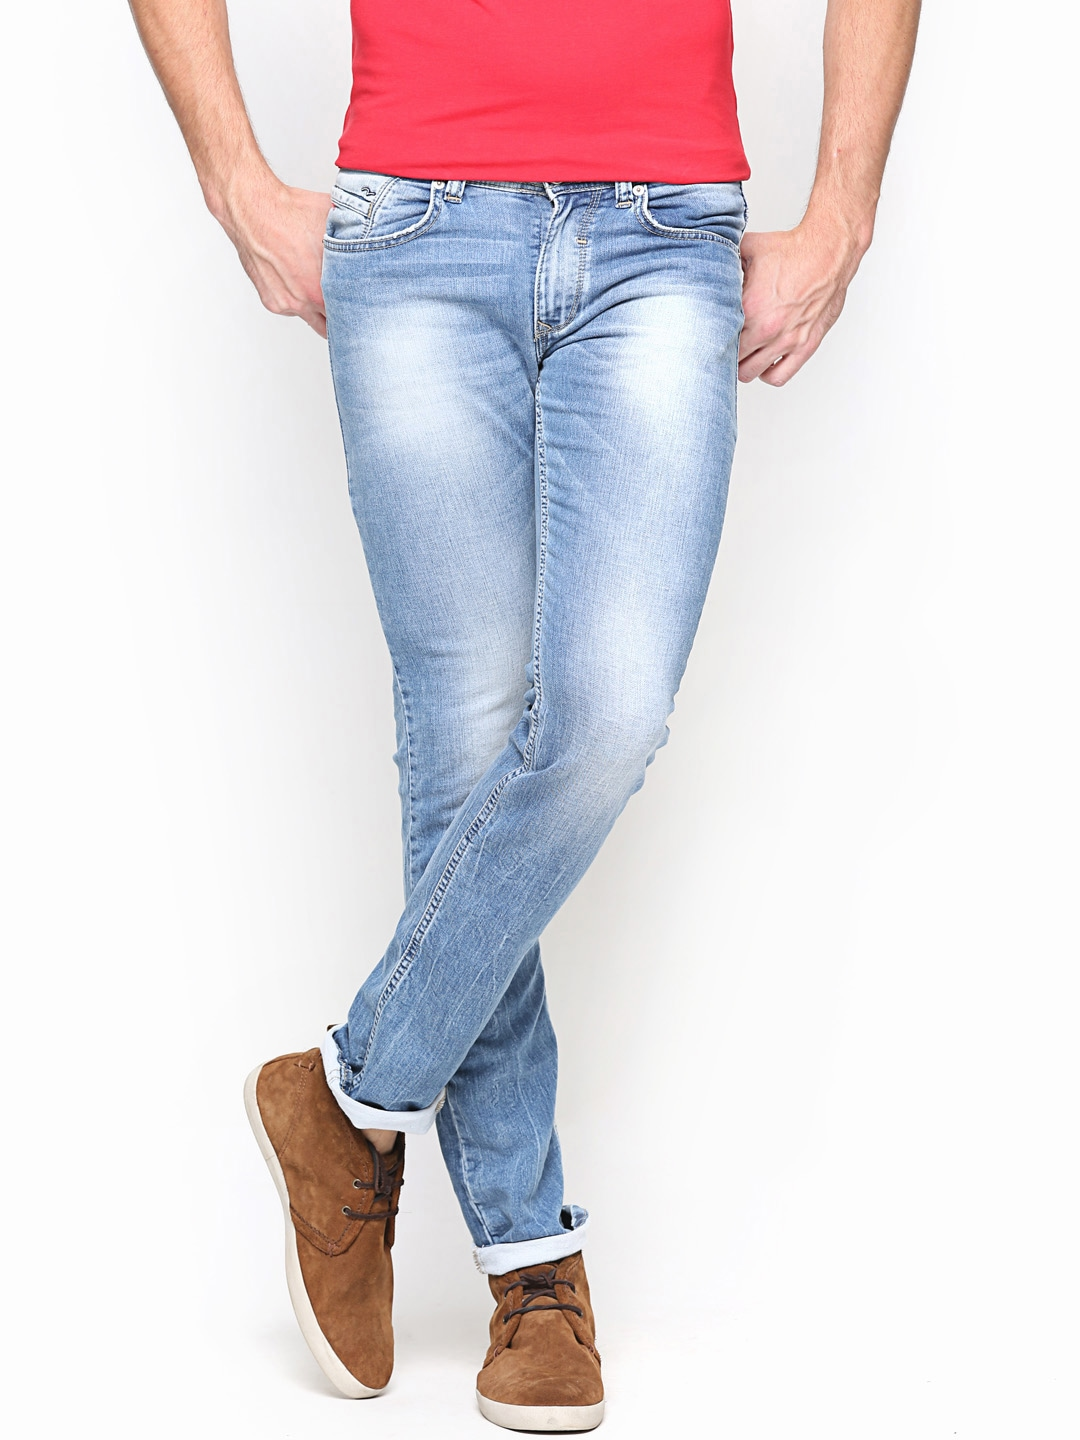 Free shipping on men's jeans at Nordstrom. Shop skinny, straight, relaxed and boot cut jeans for men by AG Jeans, Seven and Levi's. Totally free shipping & returns.